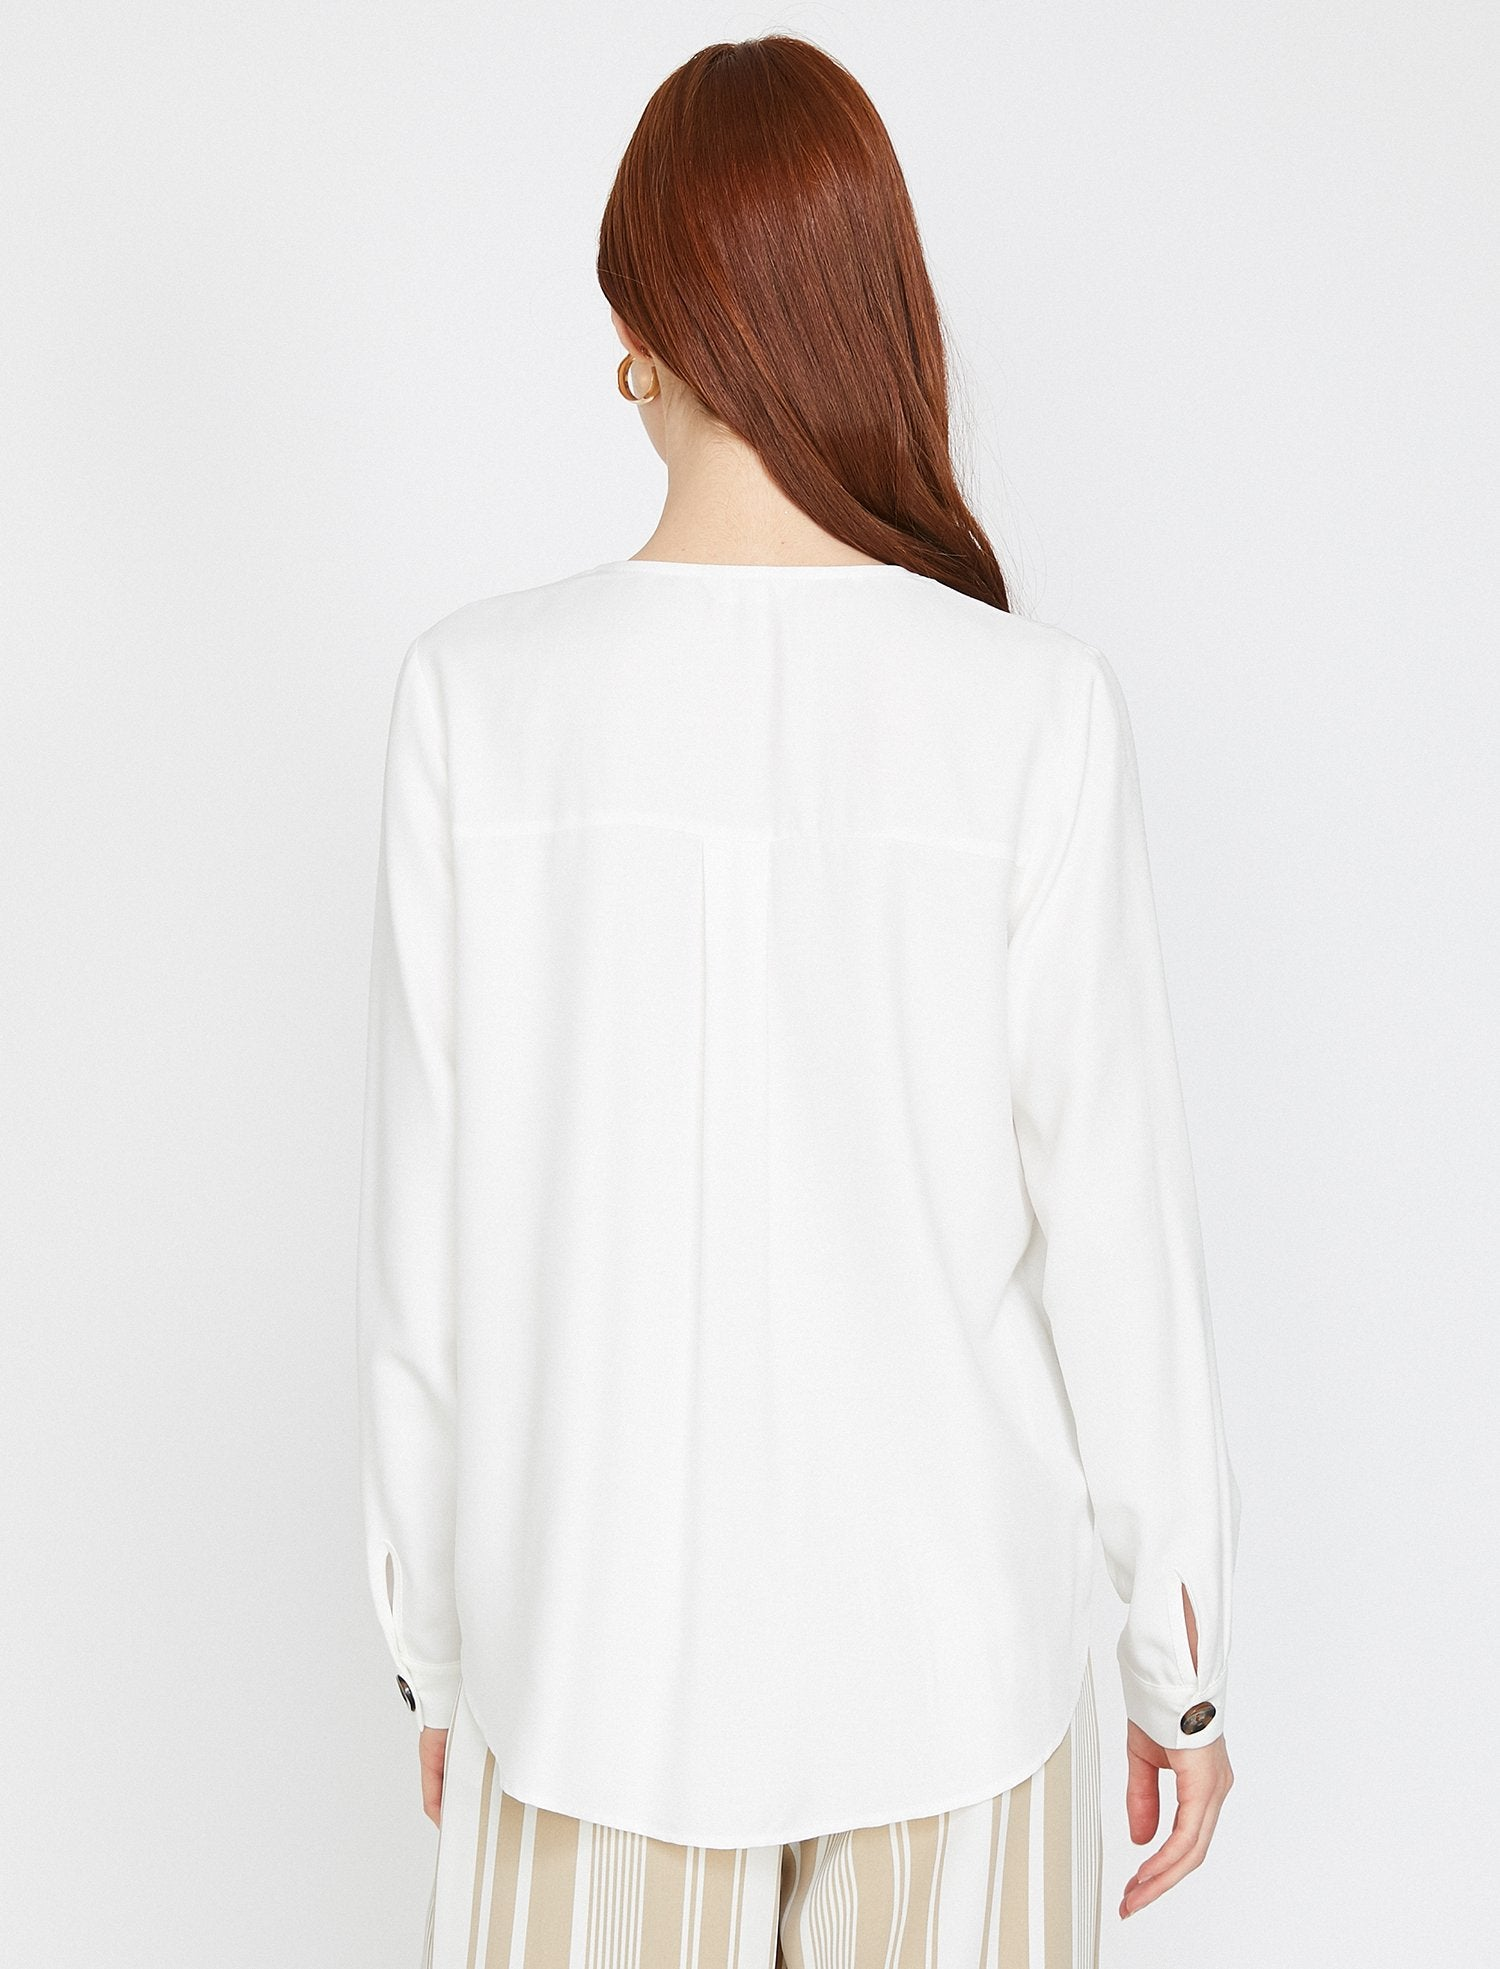 Long Sleeve V Neck Blouse in Cream